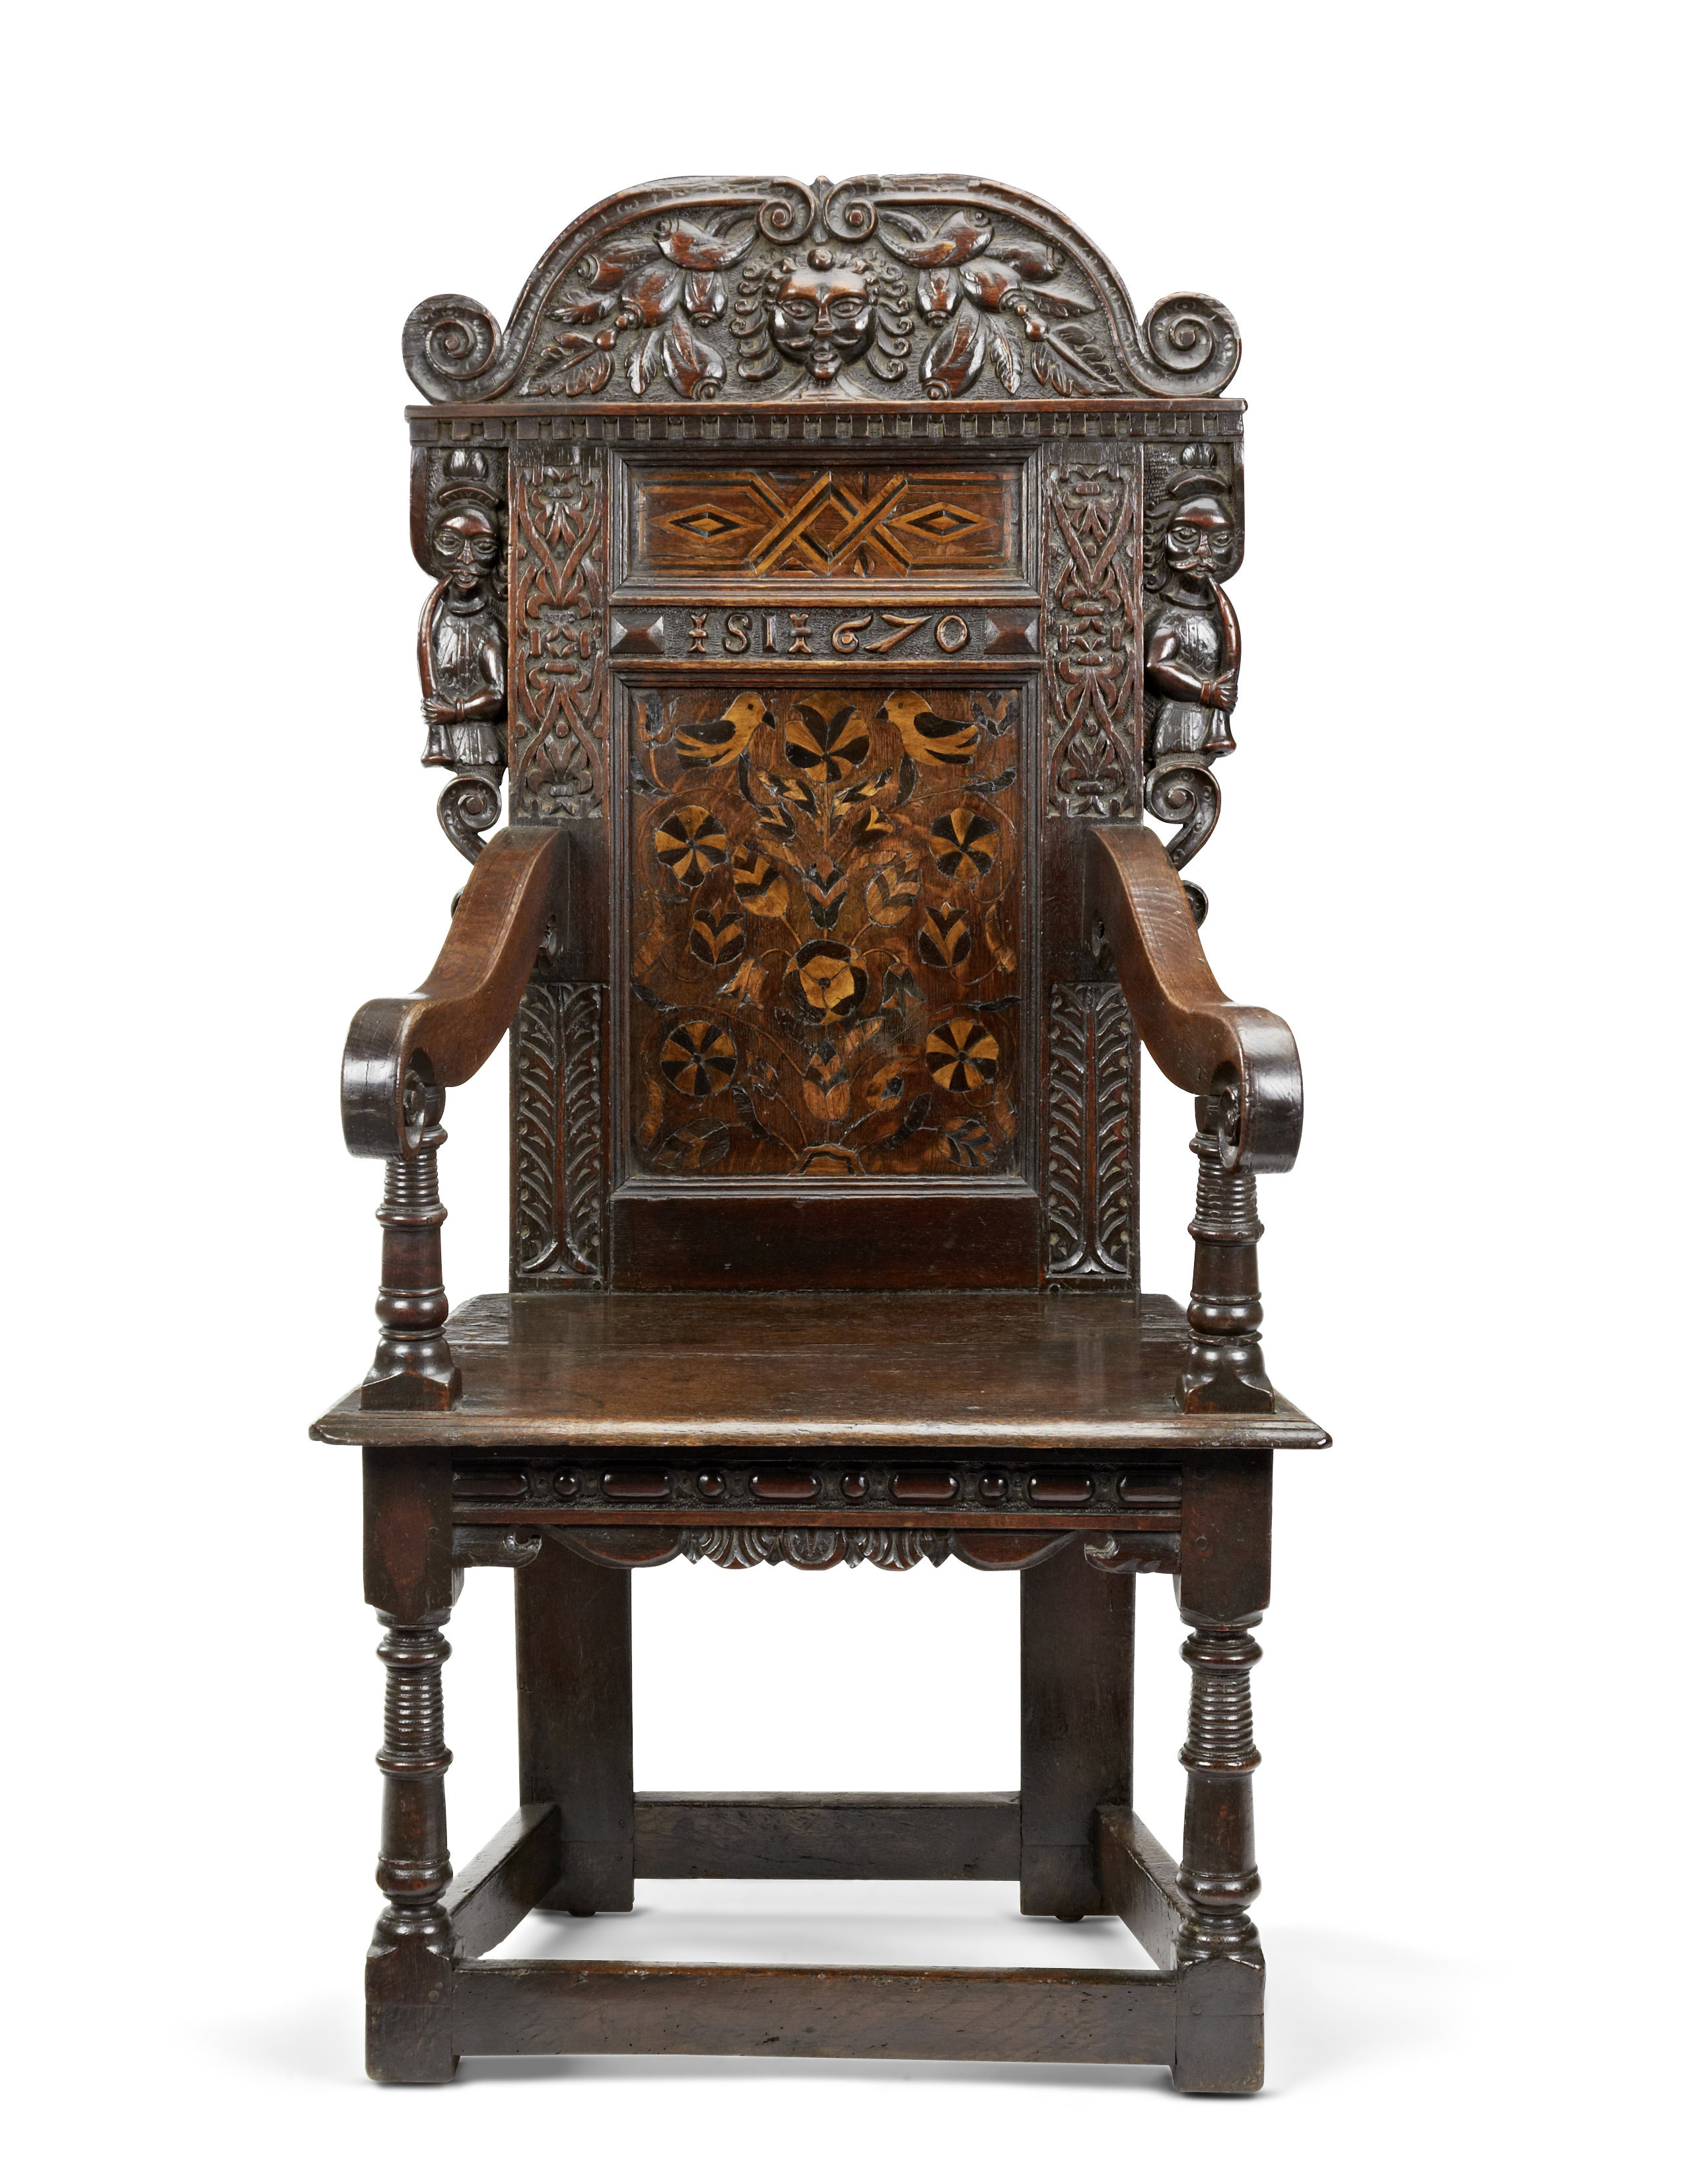 Value Of Antique Furniture Price Guide Lovely the 2015 Acc Antique Furniture Price Index